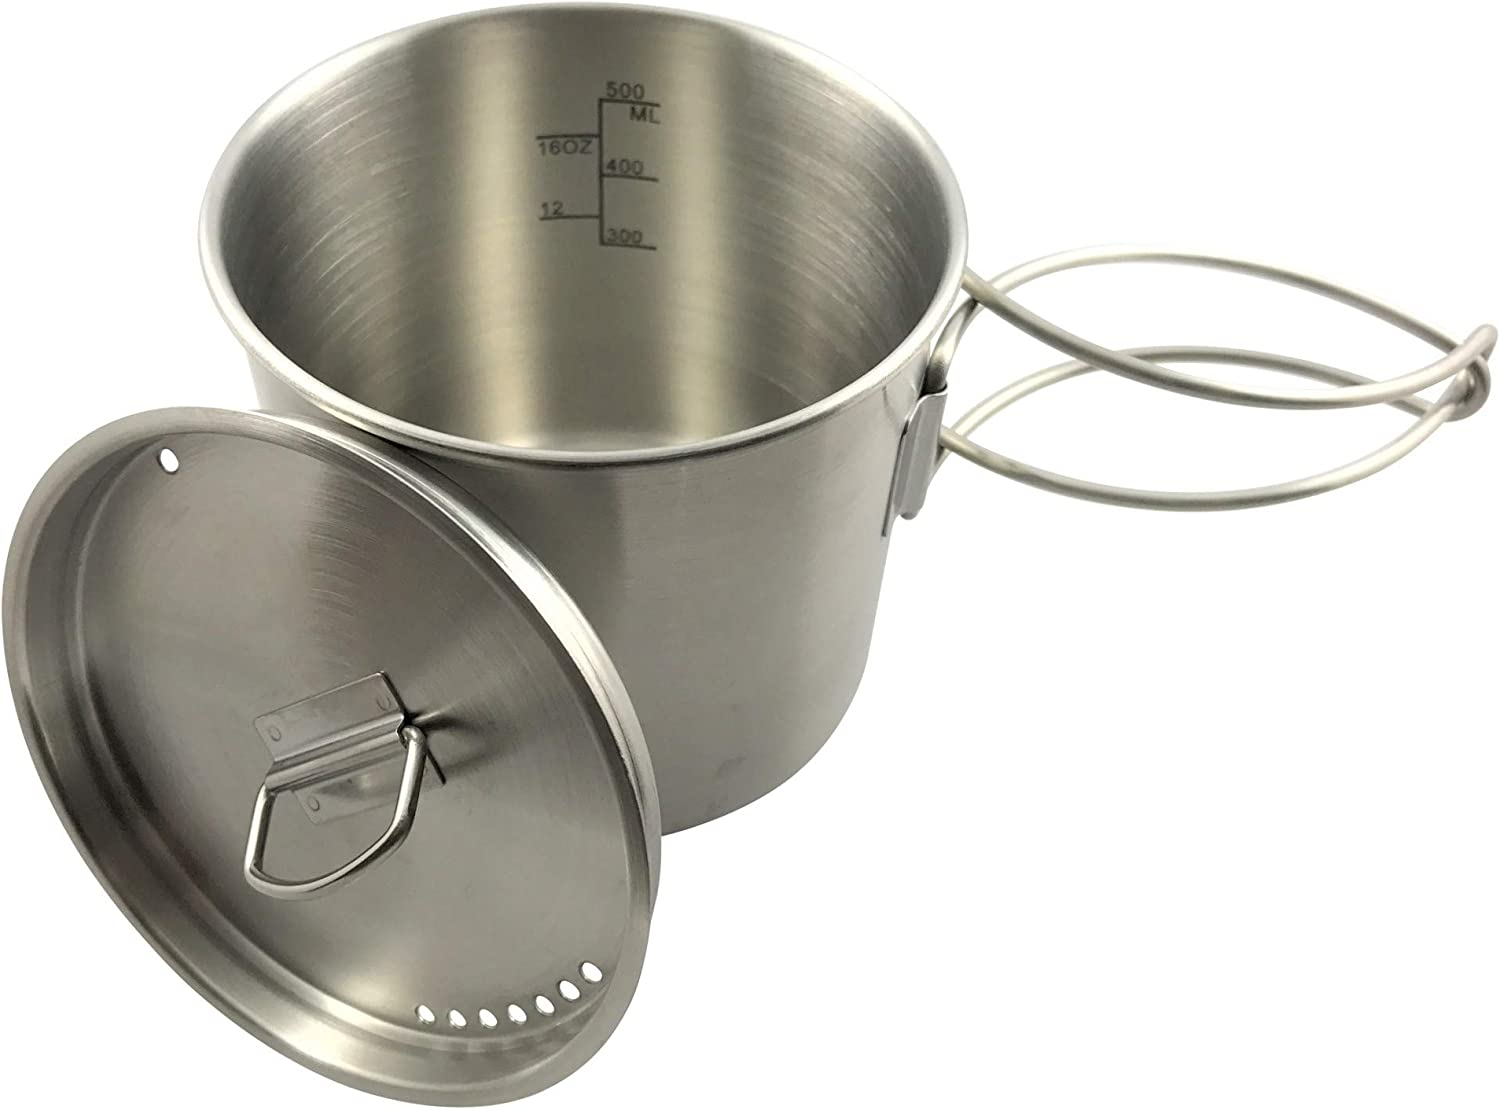 YIZAN Camping Backpacking Cup Pot Cook Set with Vented Lid Folding Handles for Hiking Camping